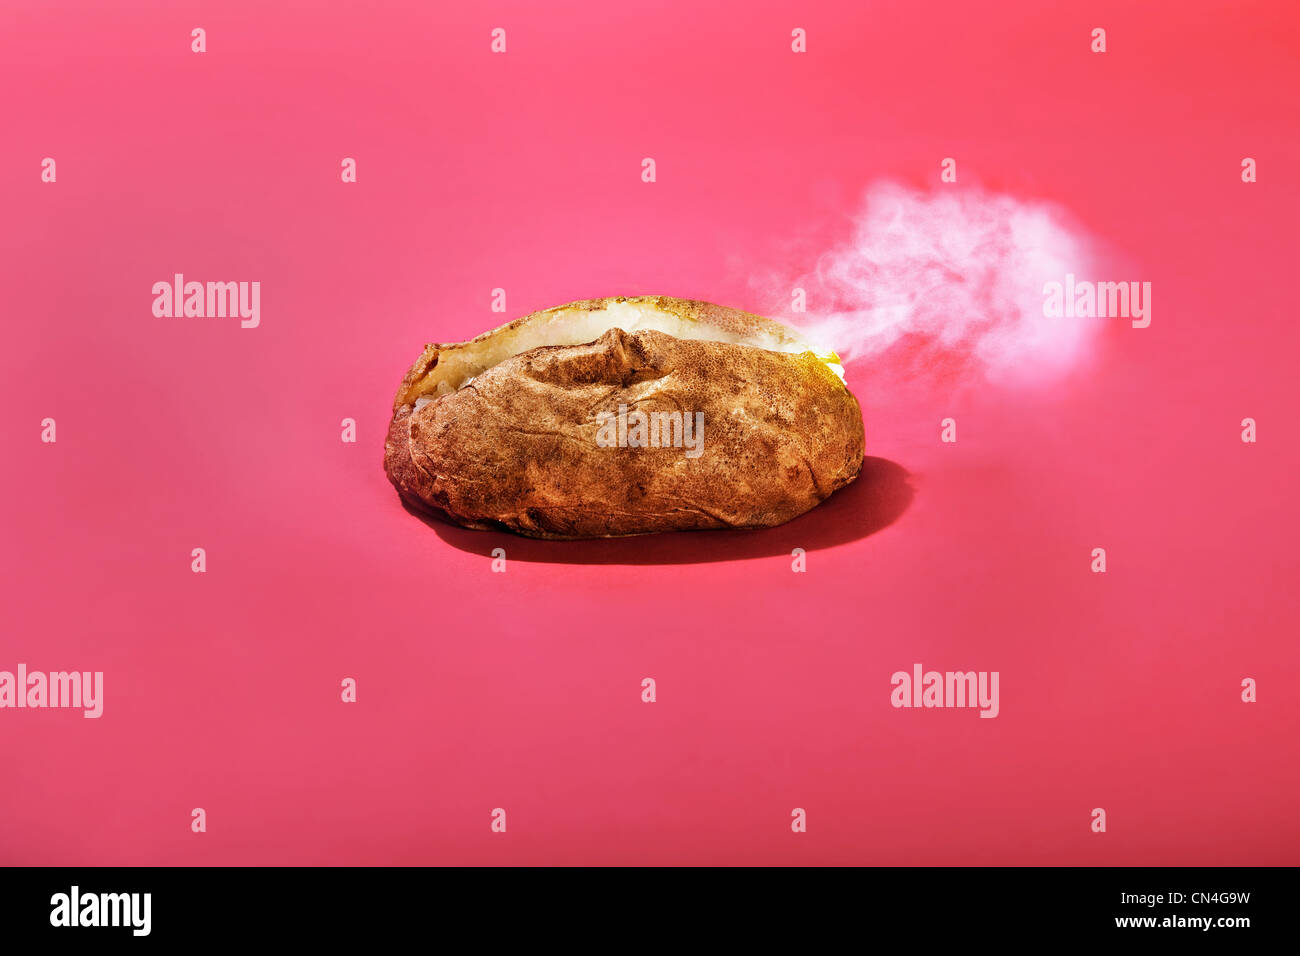 Steaming baked potato - Stock Image